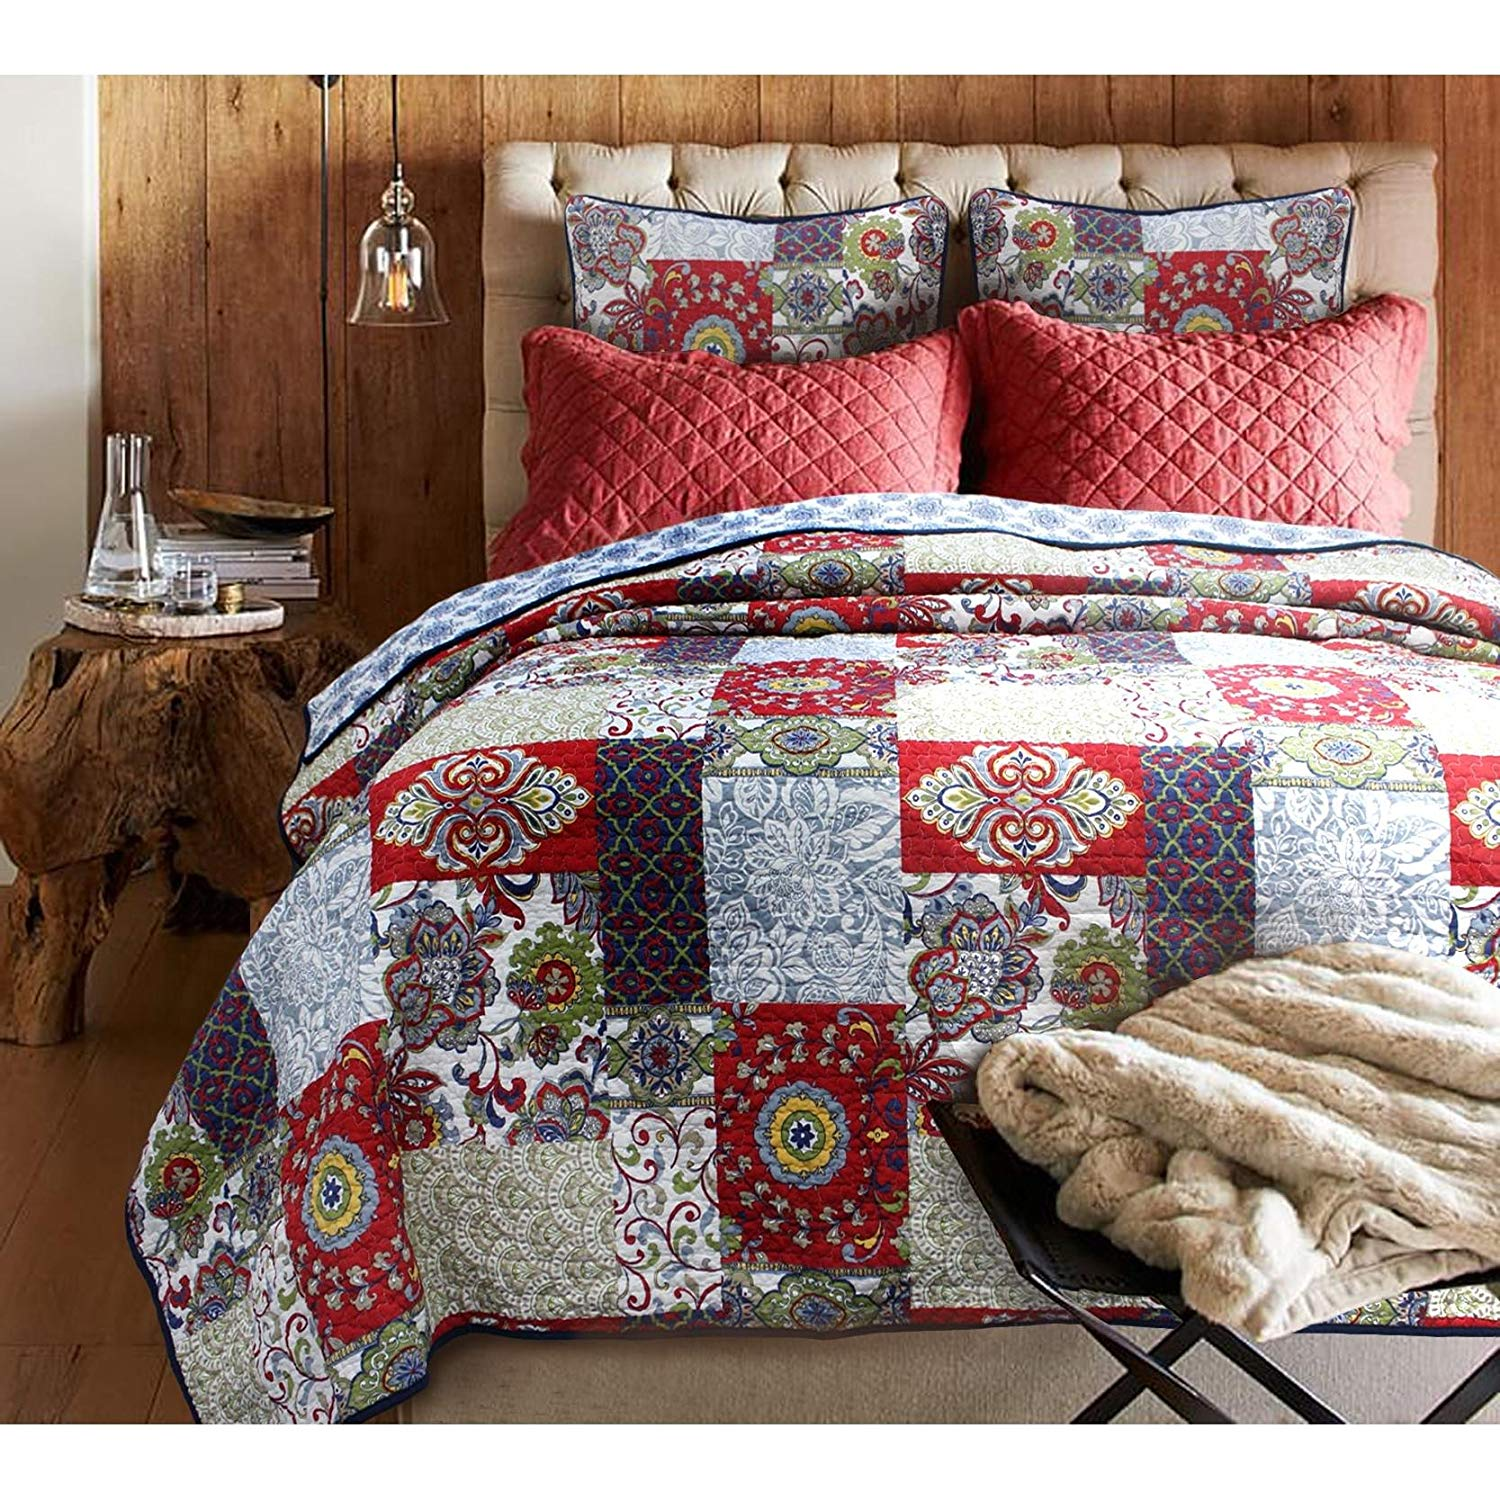 OSK 3 Piece Red Shabby Chic King Size Patchwork Quilt, White Blue Damask Country Floral, Green Trellis Paisley Pattern, Western Vintage Cottage Lake House Flowers Patch Work, Antique Country Cotton